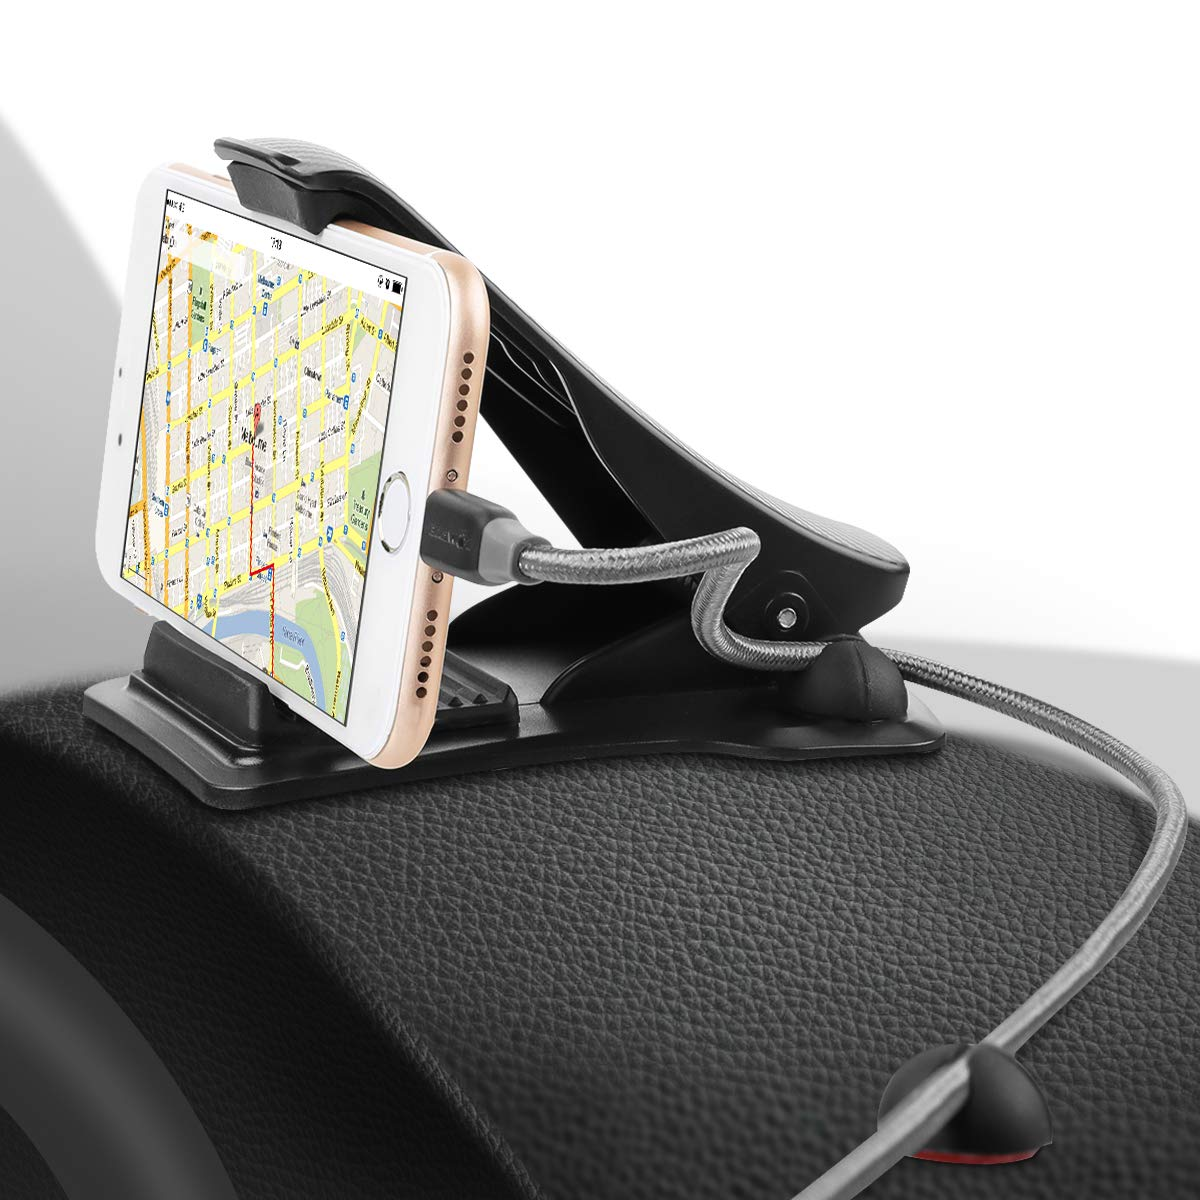 Car Mount, MWAY Car Phone Holder 3M Tapes 3.5-6.5 Inch Phone Stand for Dashboard with 4 Cable Clips,No Blocking for Sight,Durable Cell Phone Holder for iPhone X 8 7/7Plus/6/6S Plus/Samsung Smartphone